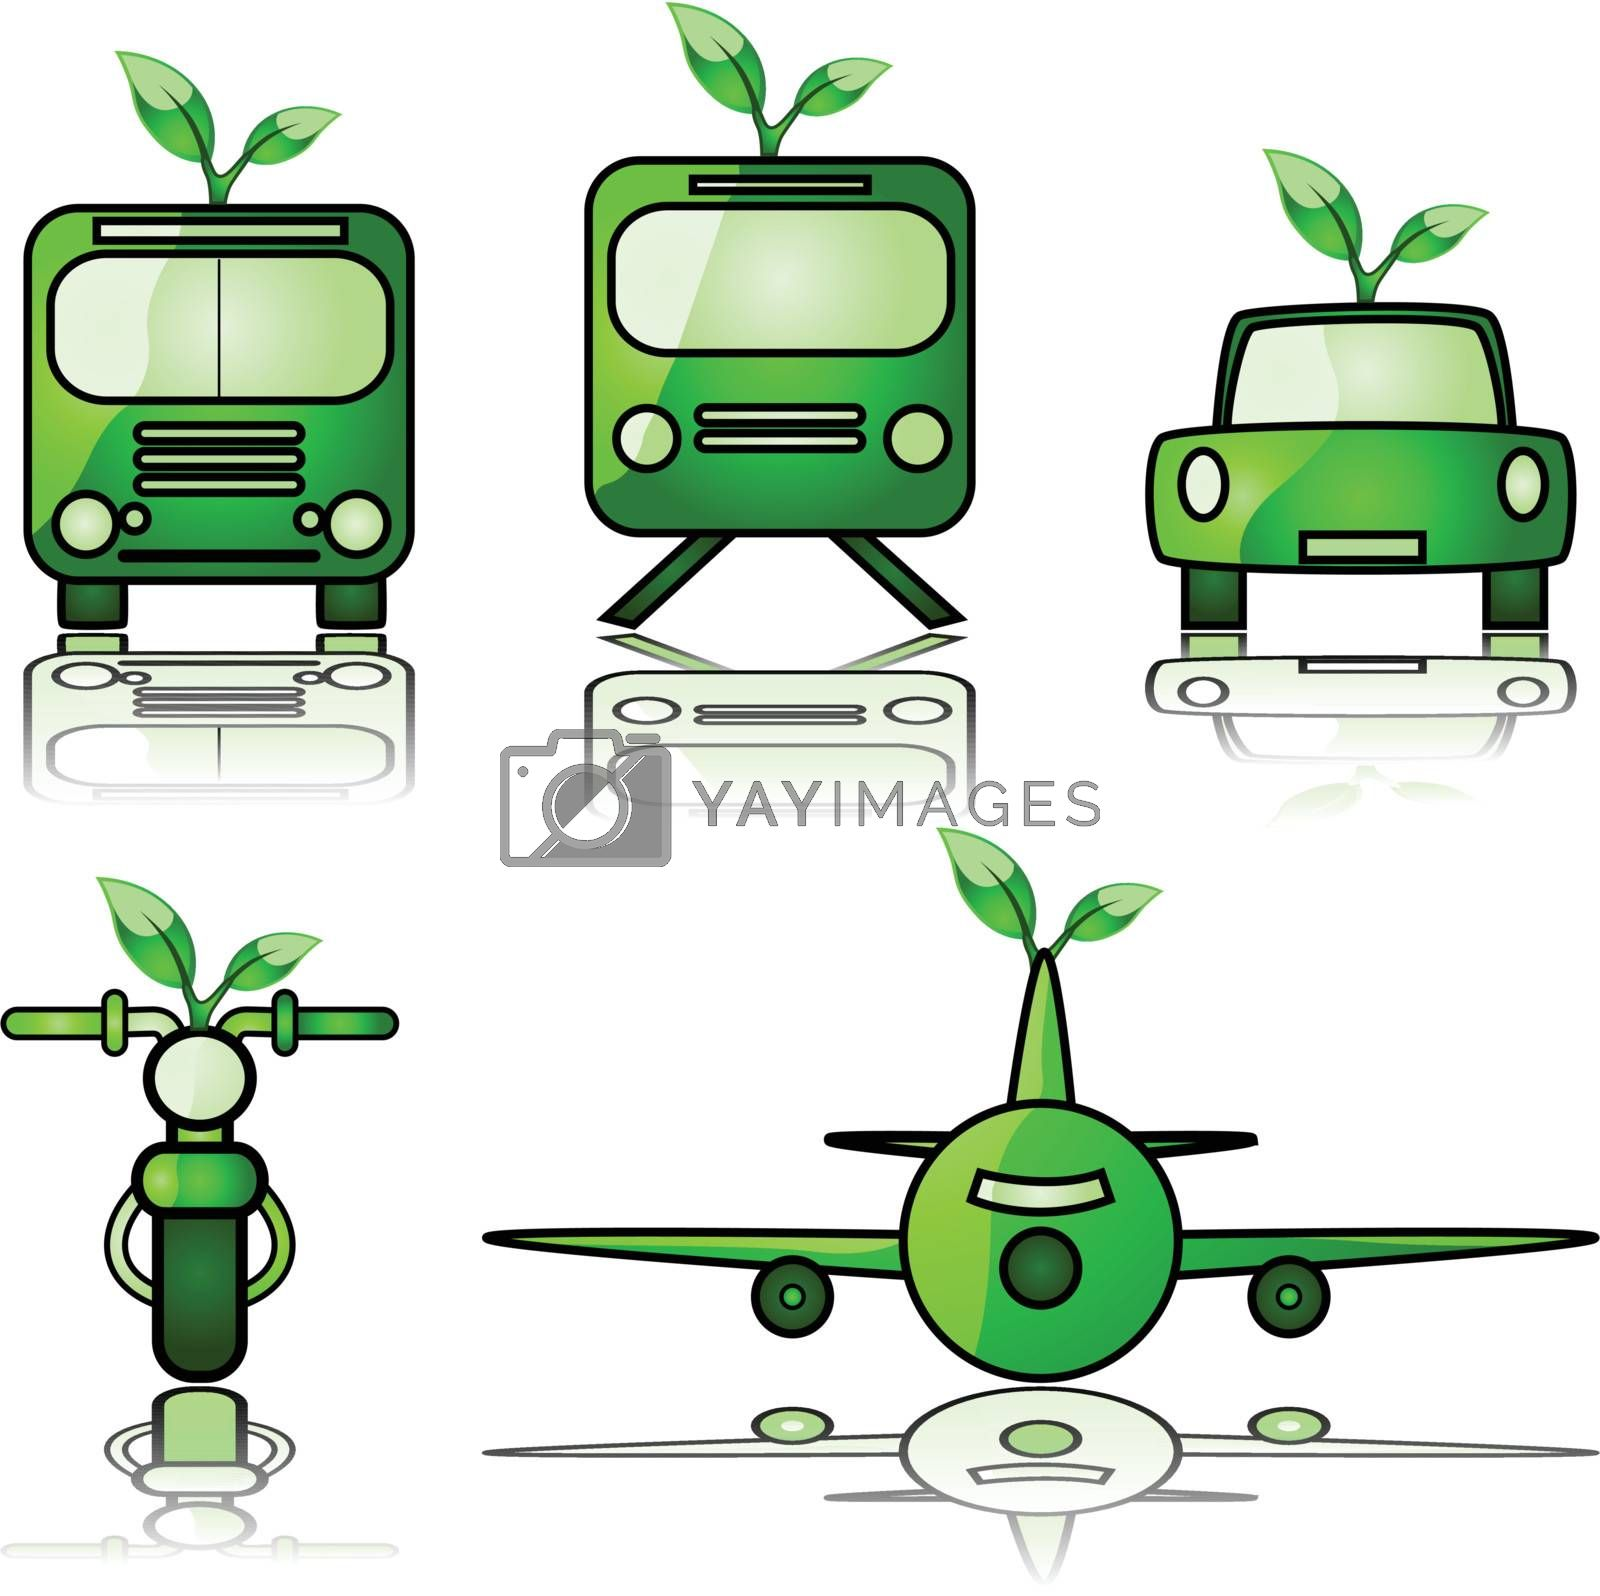 Glossy illustration set of different modes of transportation, with a young tree sprouting from them to signify green forms of travel